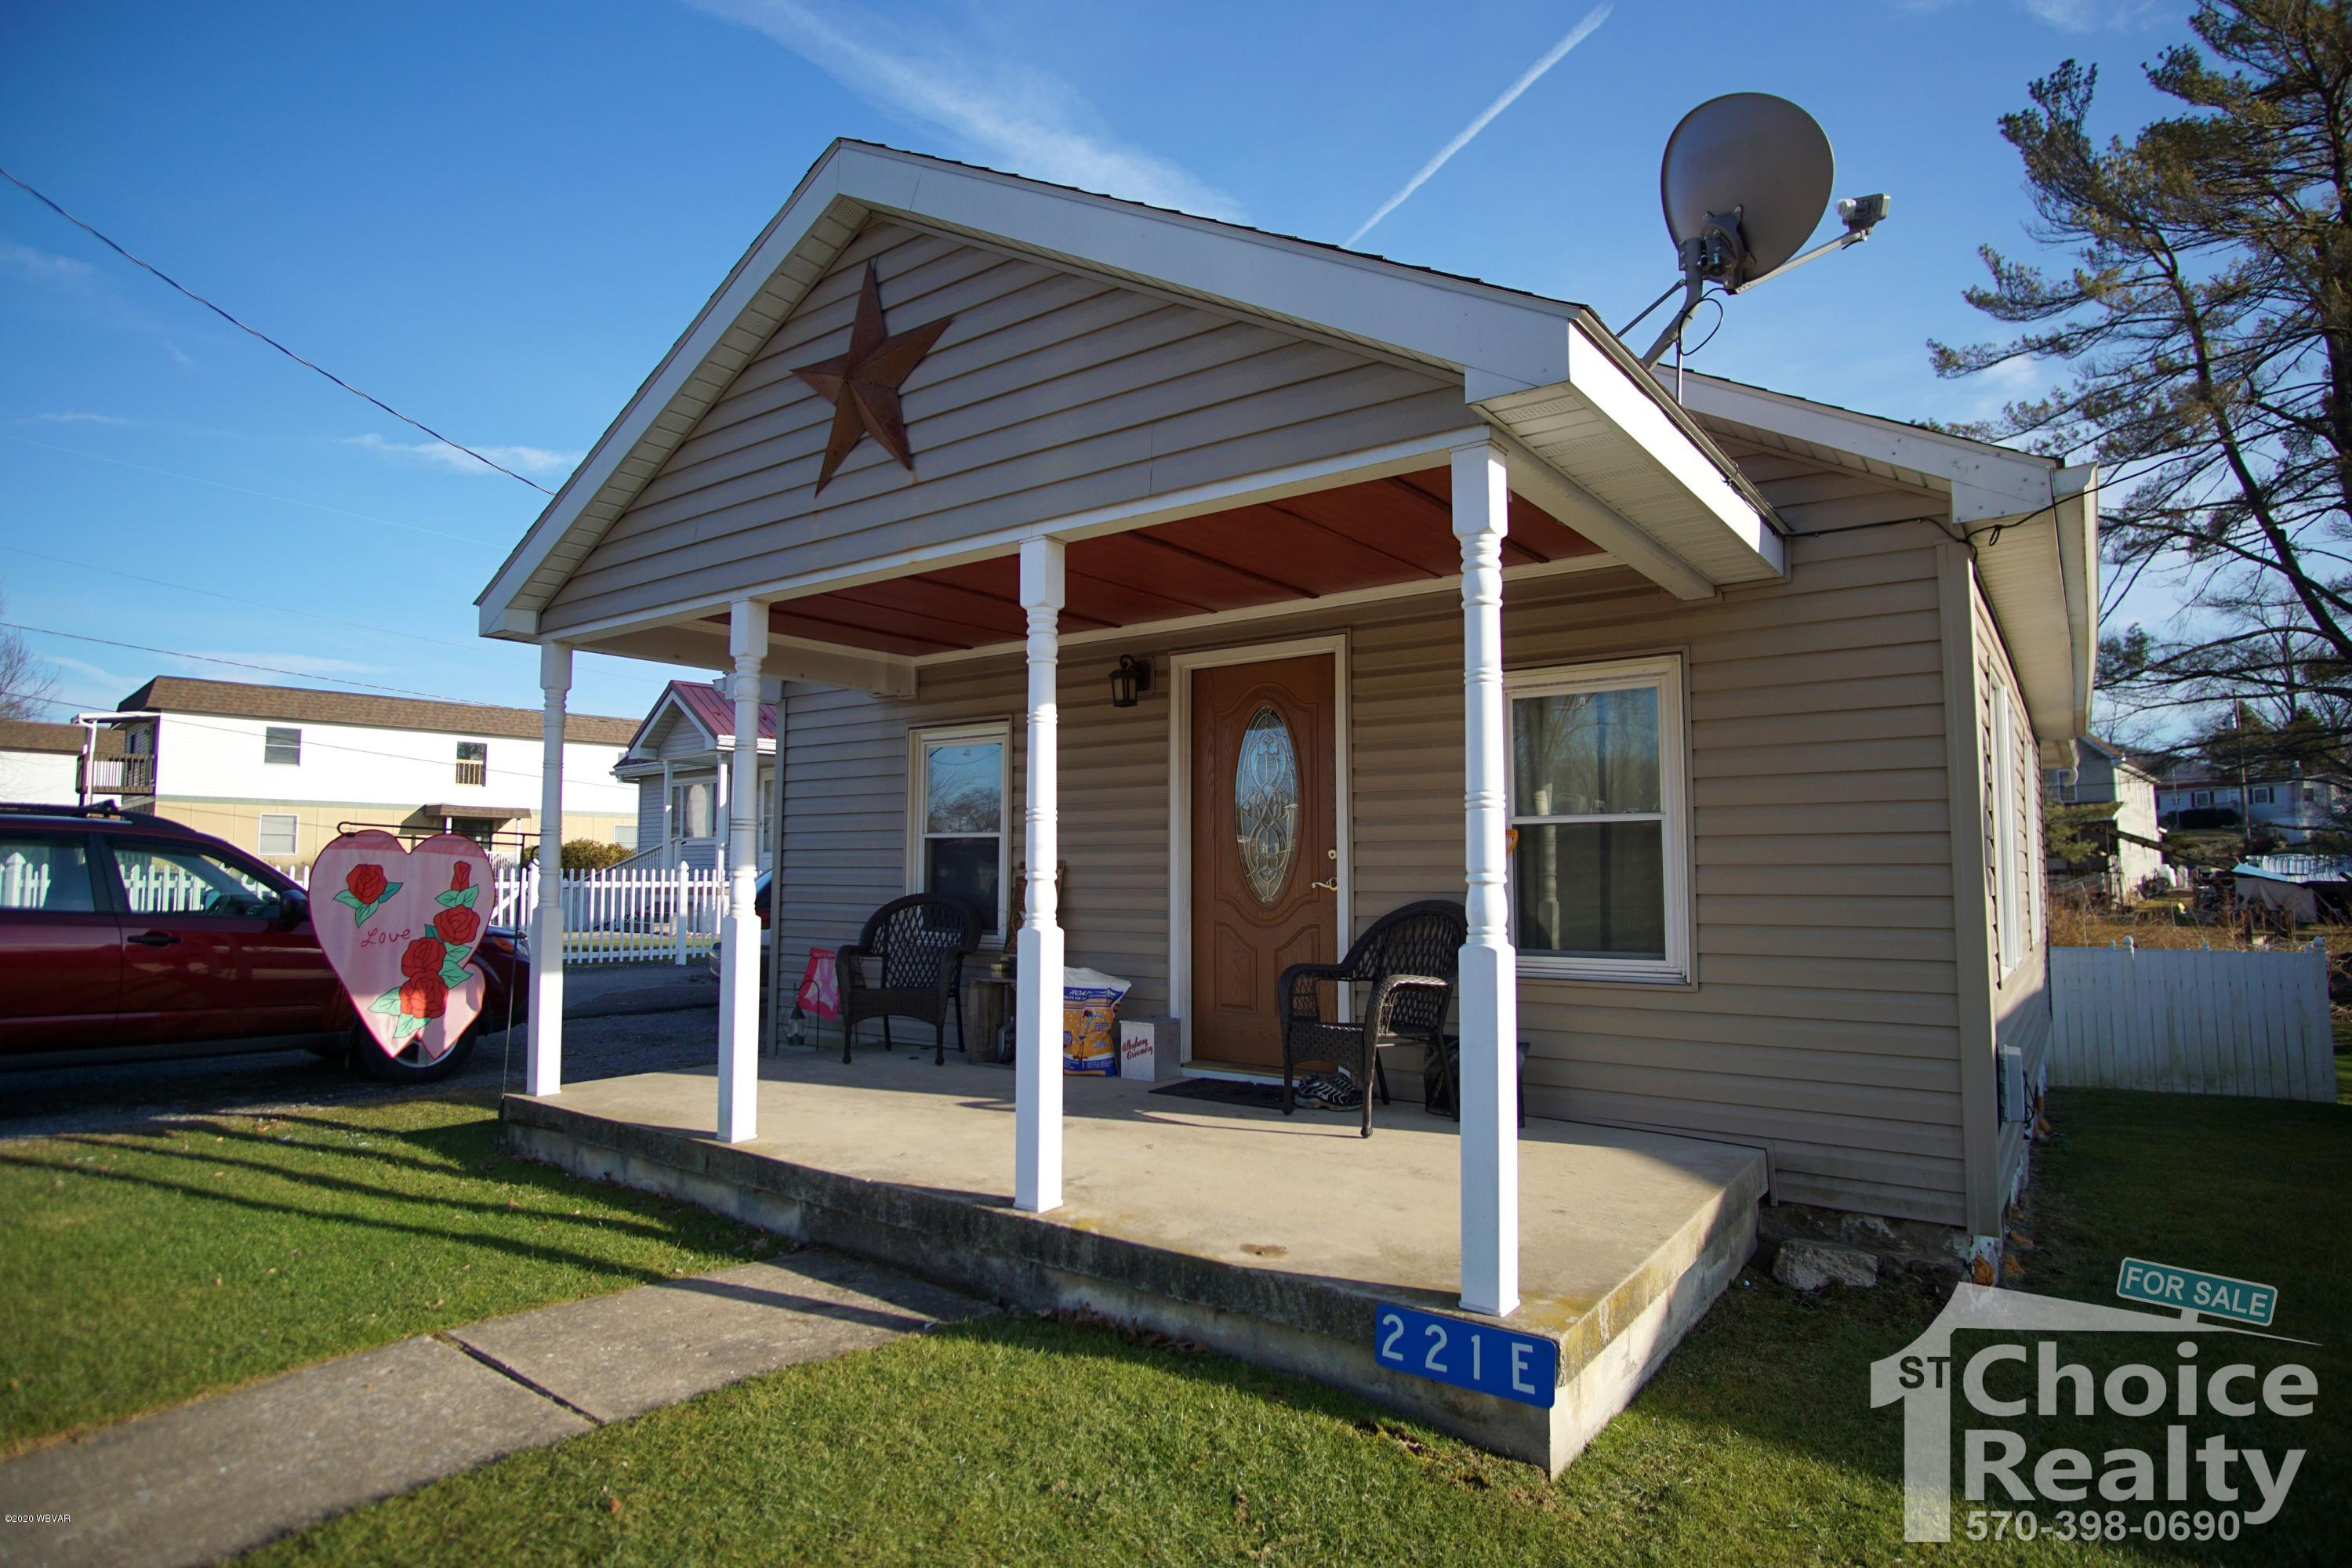 221 CENTRAL AVENUE, Jersey Shore, PA 17740, 3 Bedrooms Bedrooms, ,1 BathroomBathrooms,Residential,For sale,CENTRAL,WB-89624